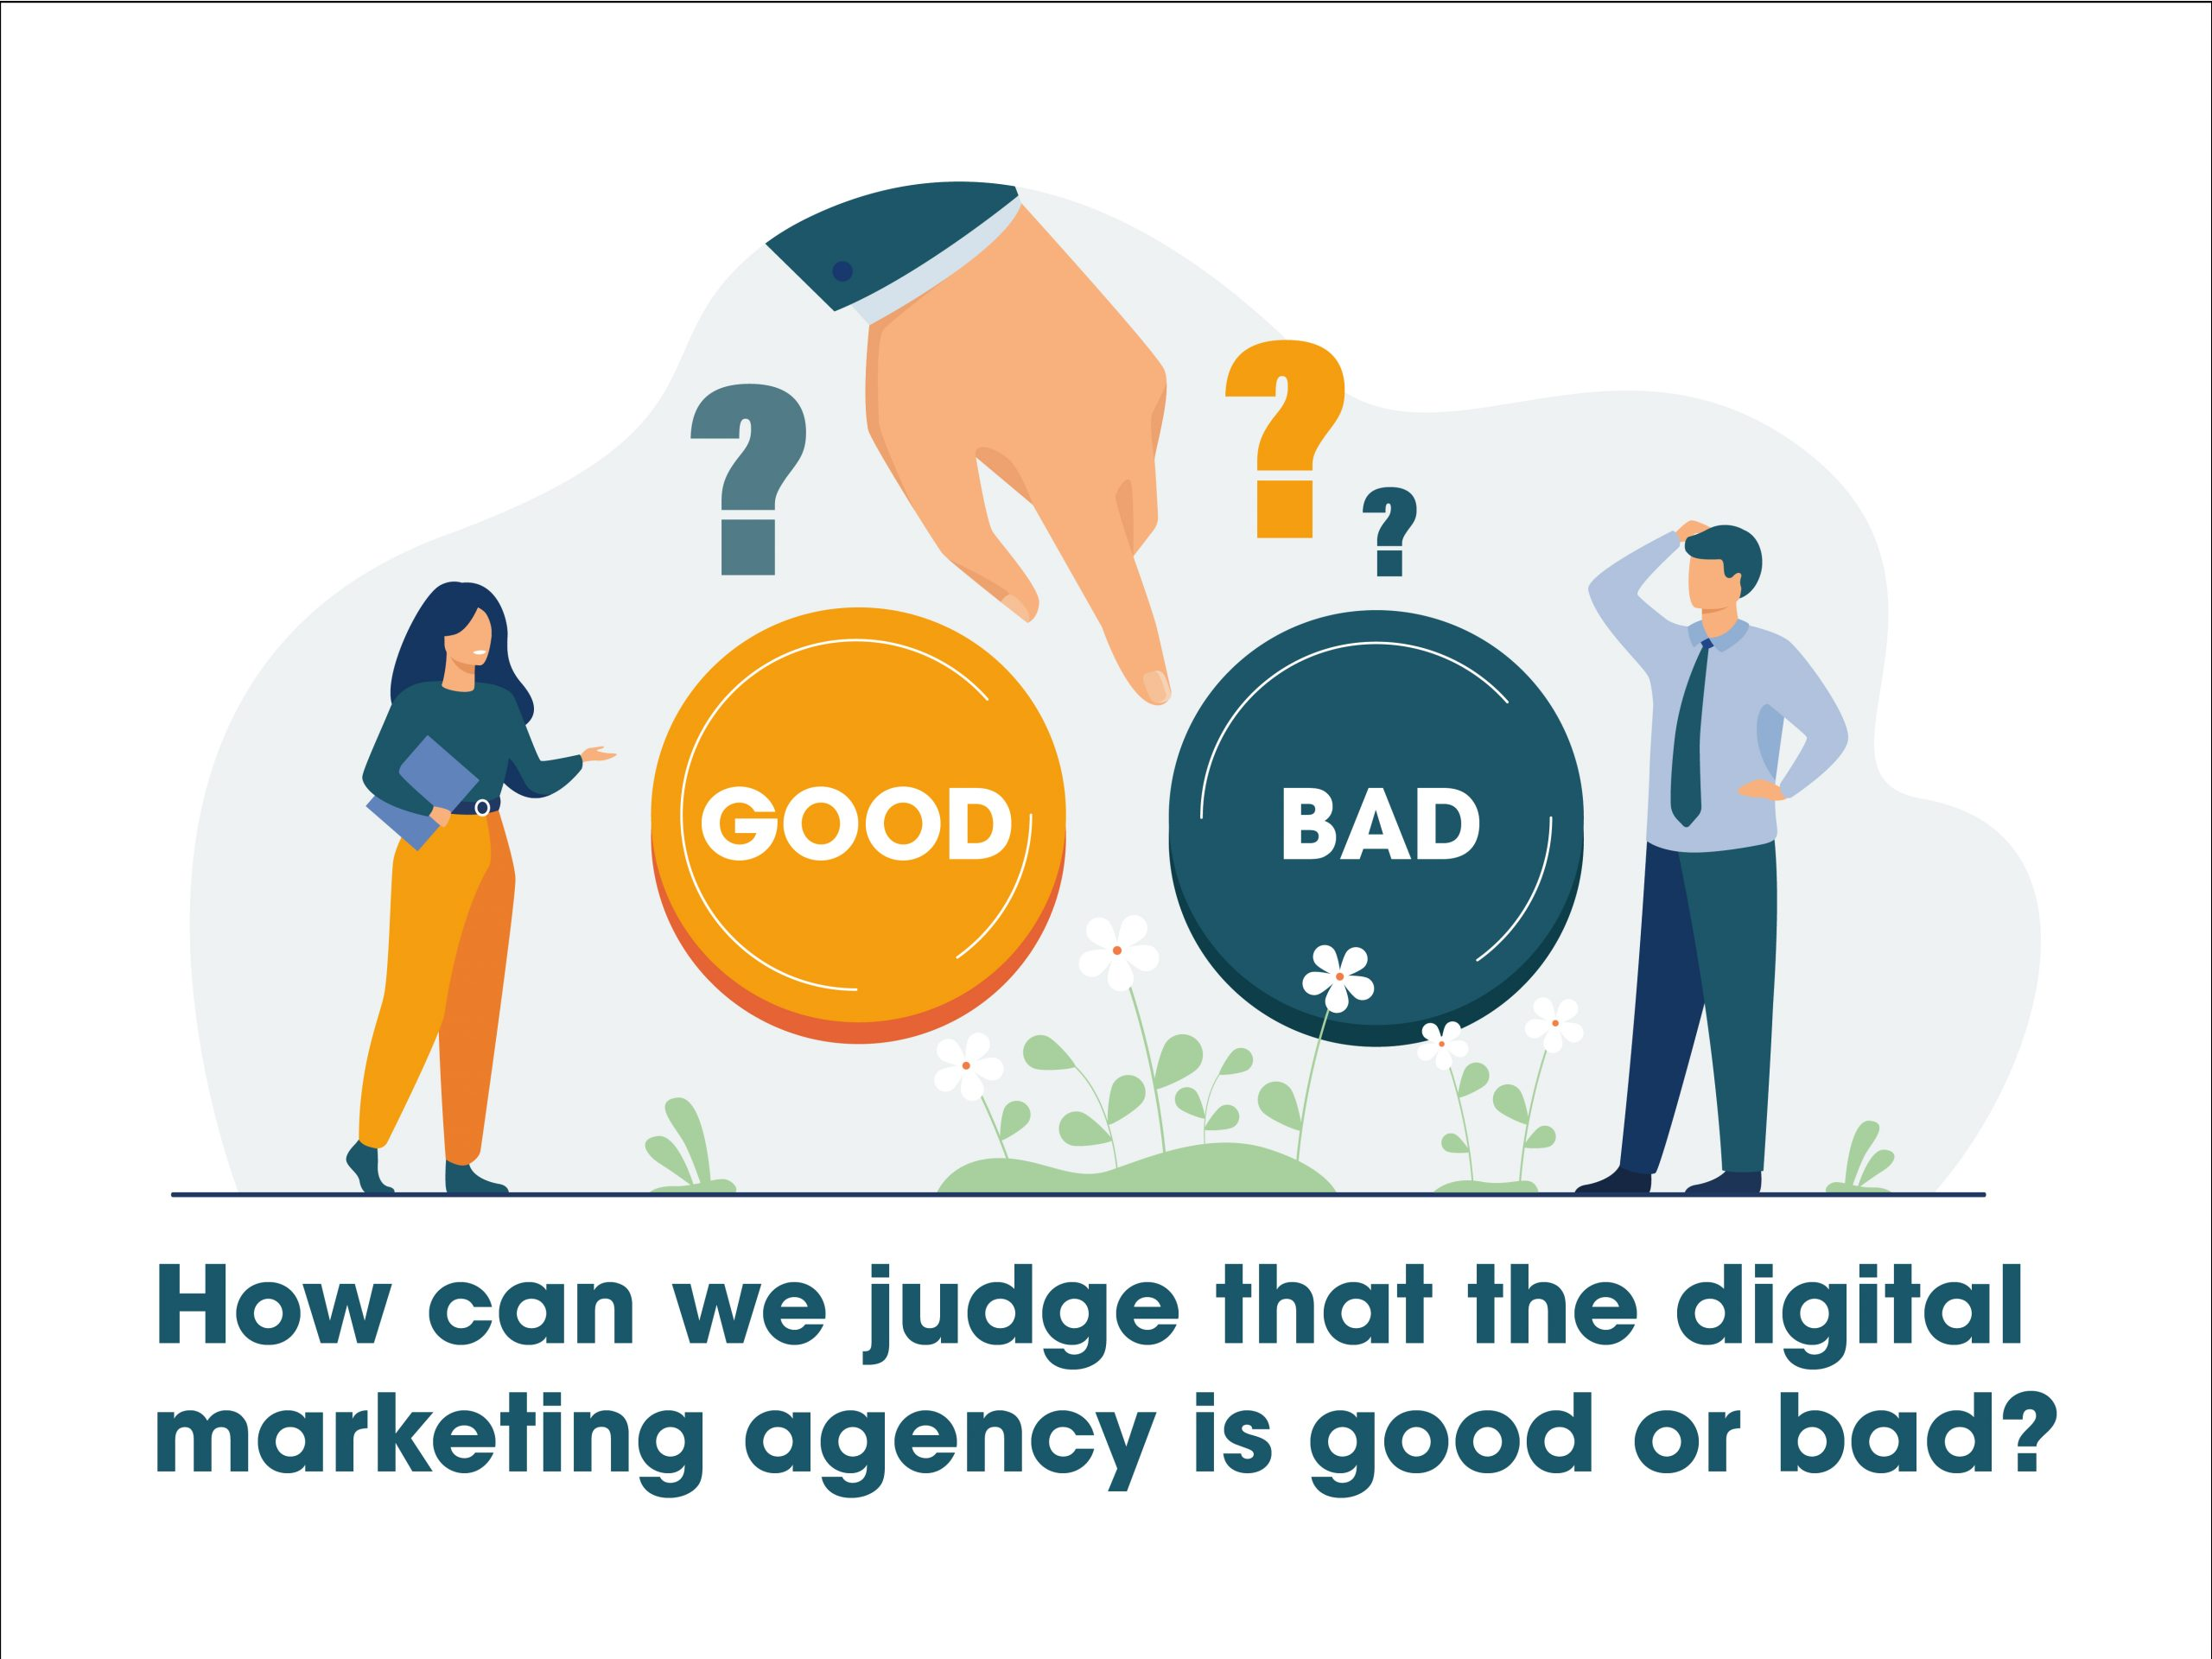 How can we judge that the digital marketing agency is good or bad